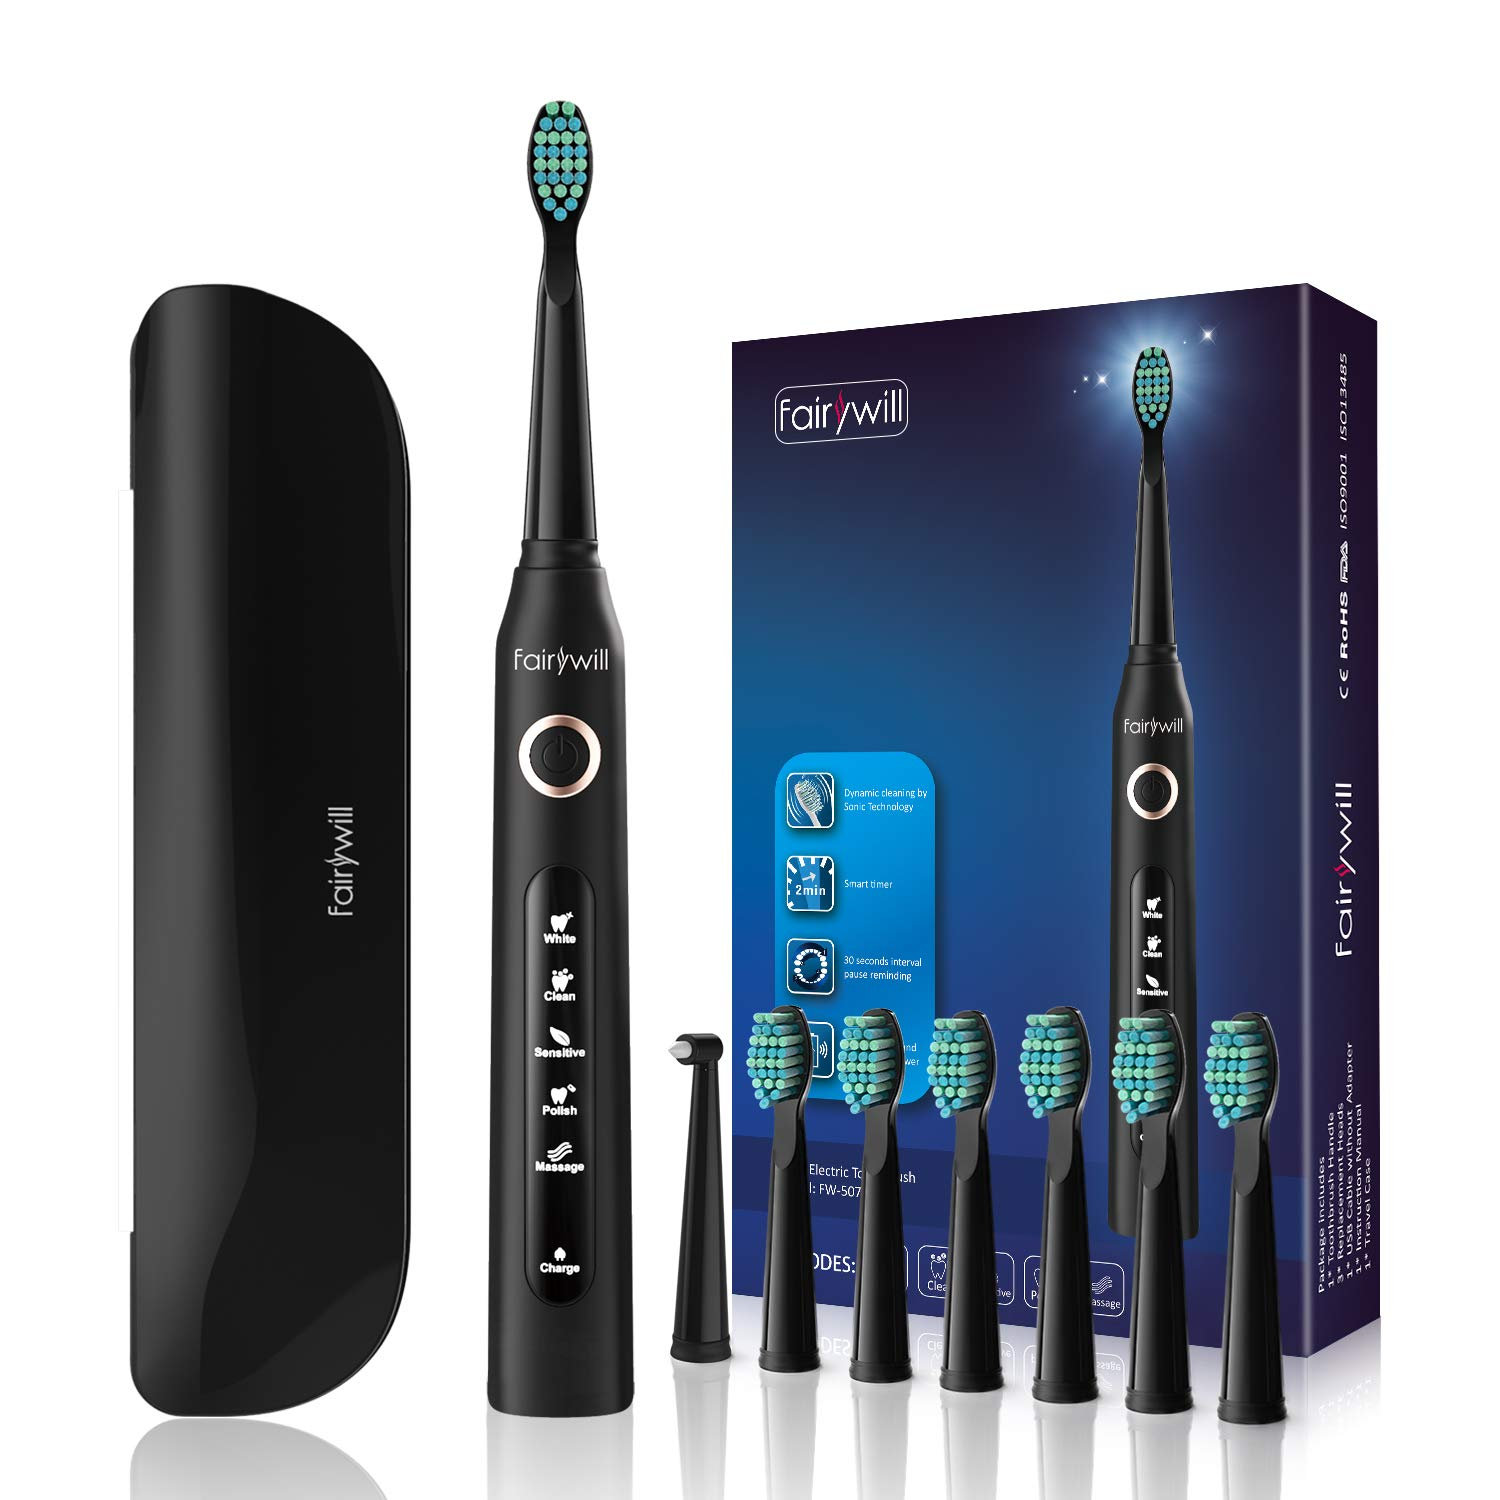 Fairywill Electric Toothbrush with 5 Modes, Smart Timer, 8 Brush Heads